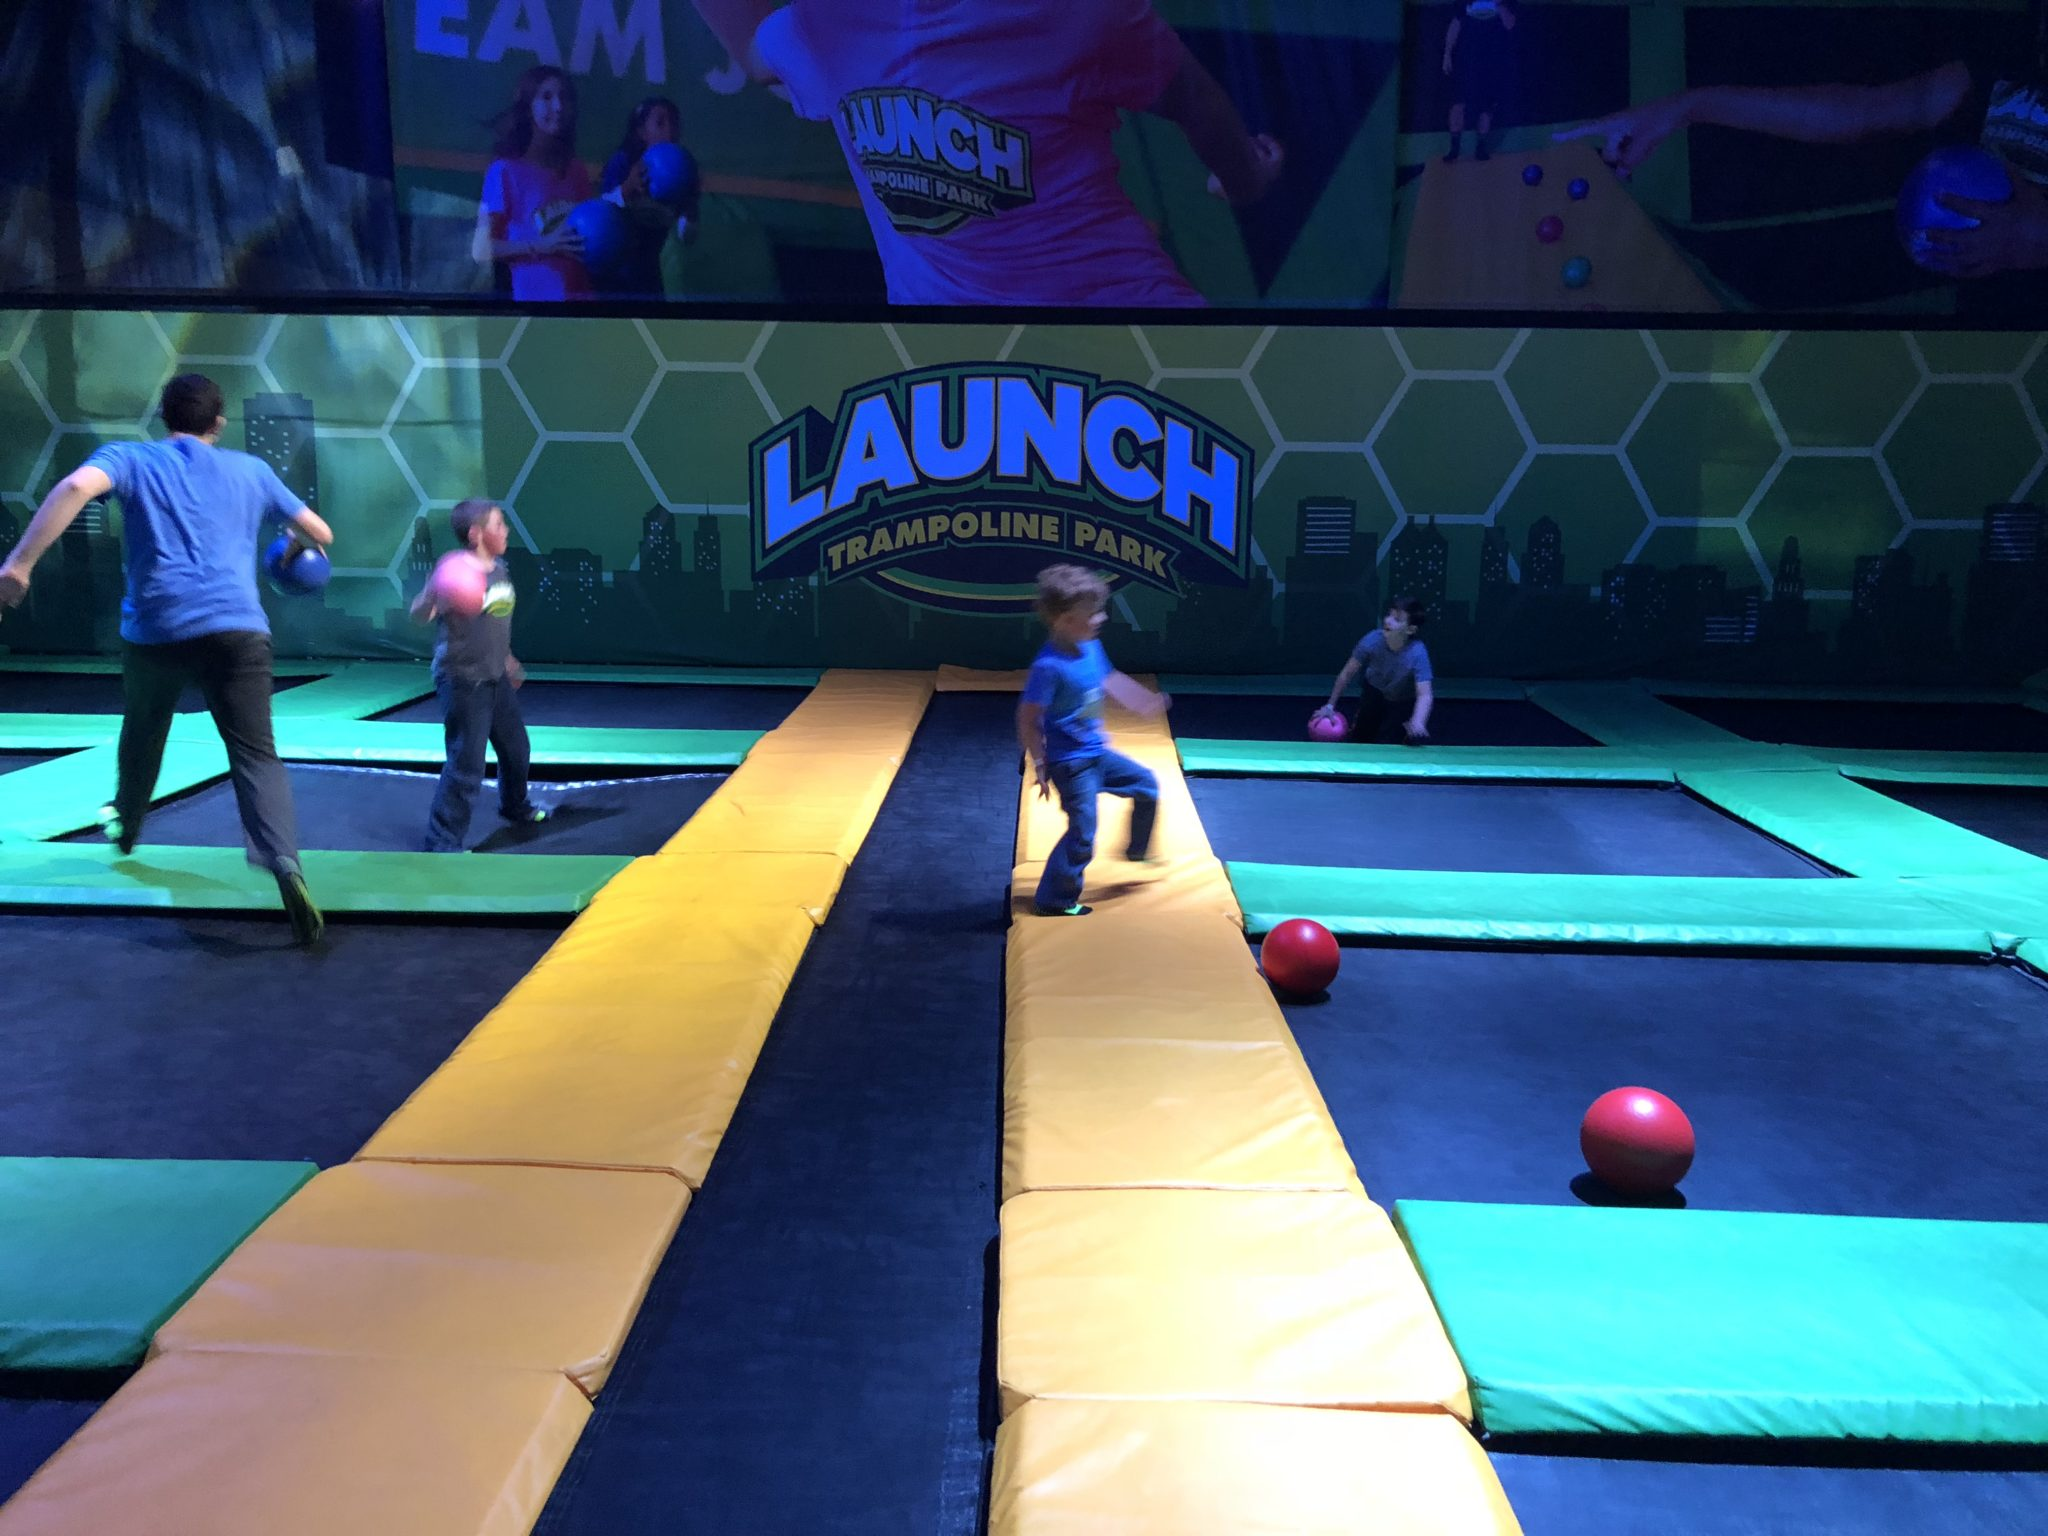 Did you know that Launch RI just got a major upgrade? It's not just a trampoline park anymore. Of course they still have trampolines, but now they have a bunch of seriously awesome attractions (a Ninja Warrior Course, Extreme Dodgeball and Laser Tag to name a few).